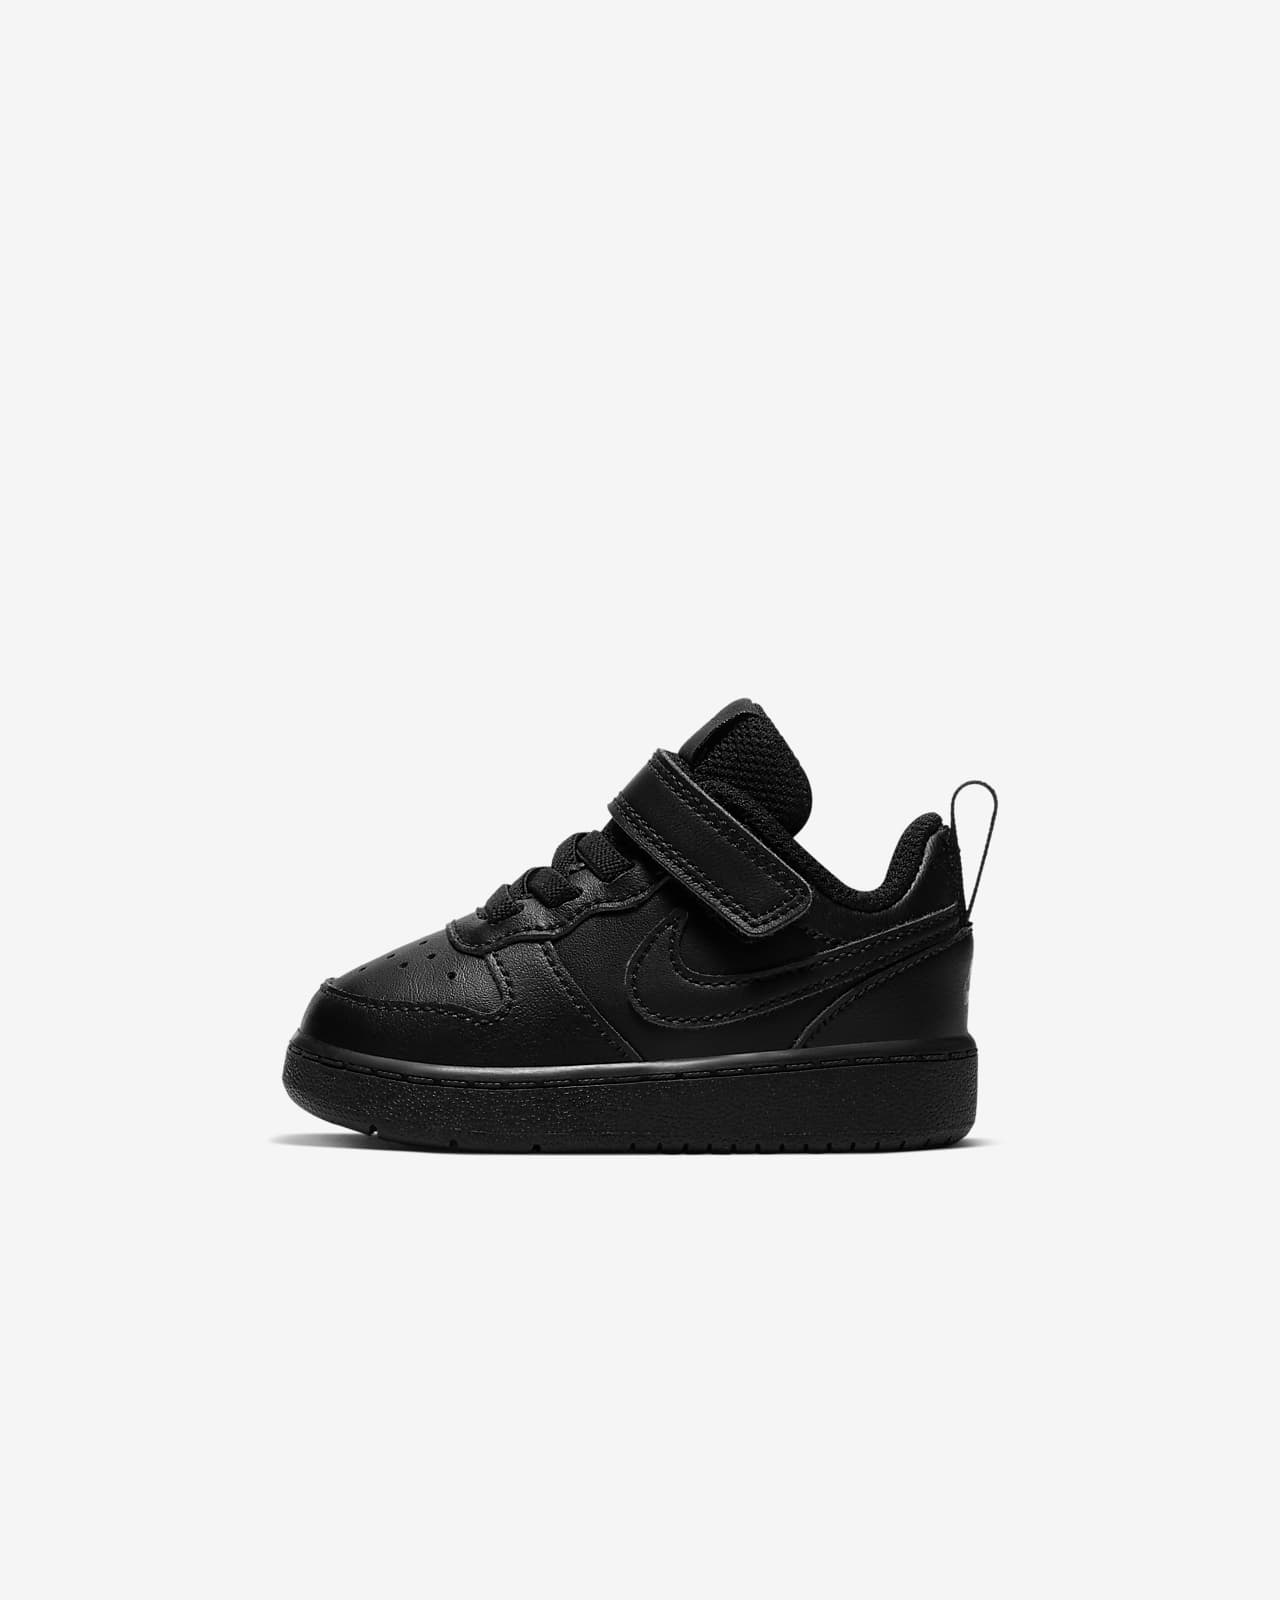 Nike Court Borough Low 2 Baby/Toddler Shoes